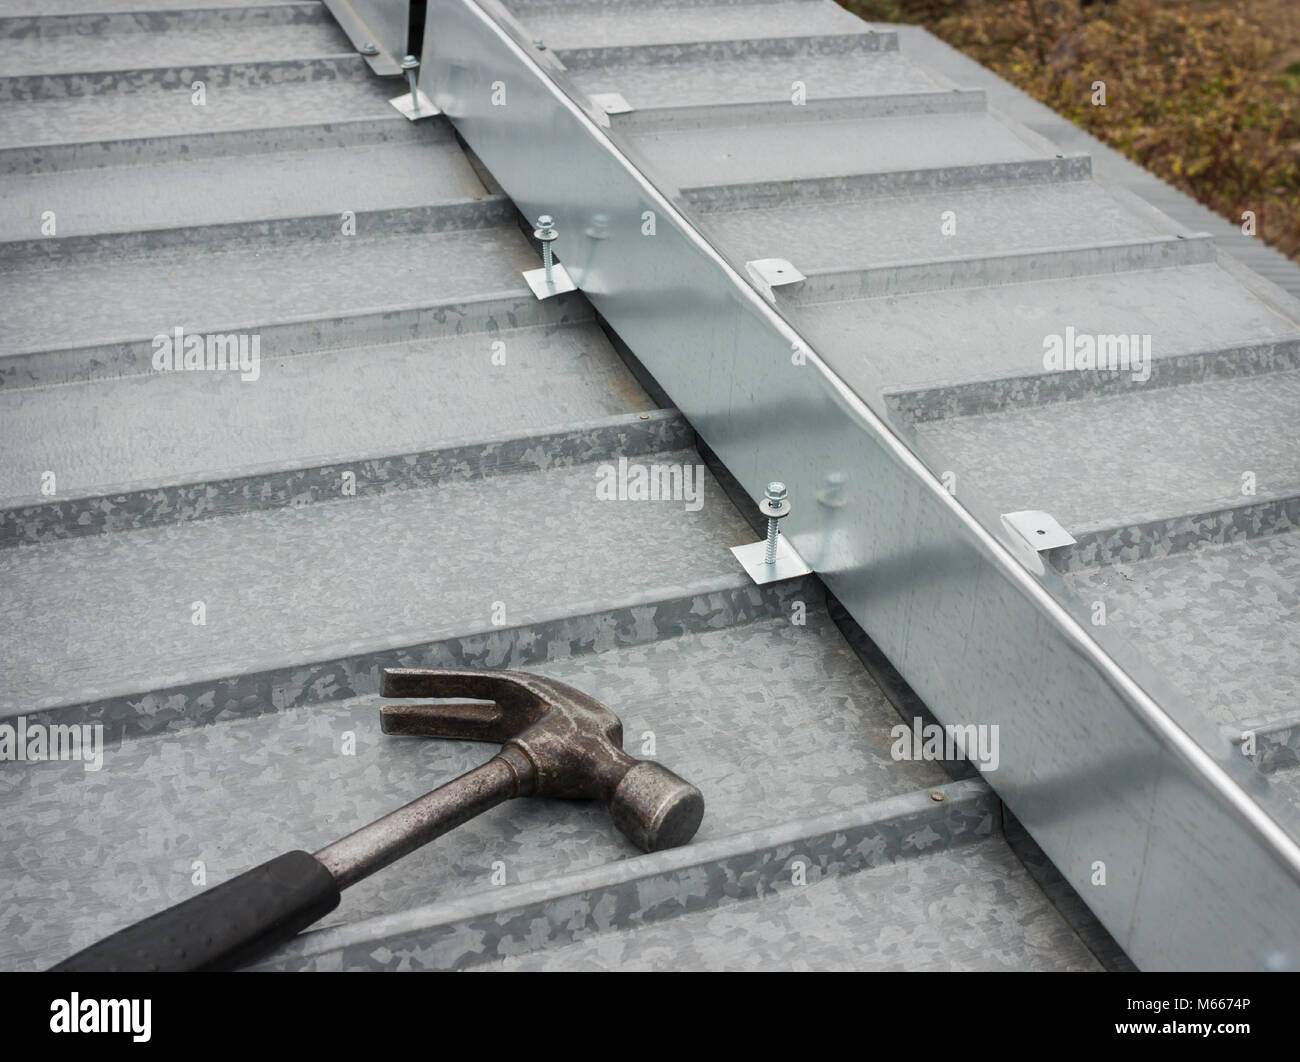 The barrier for snow guard on the edge of a metal roof - Stock Image